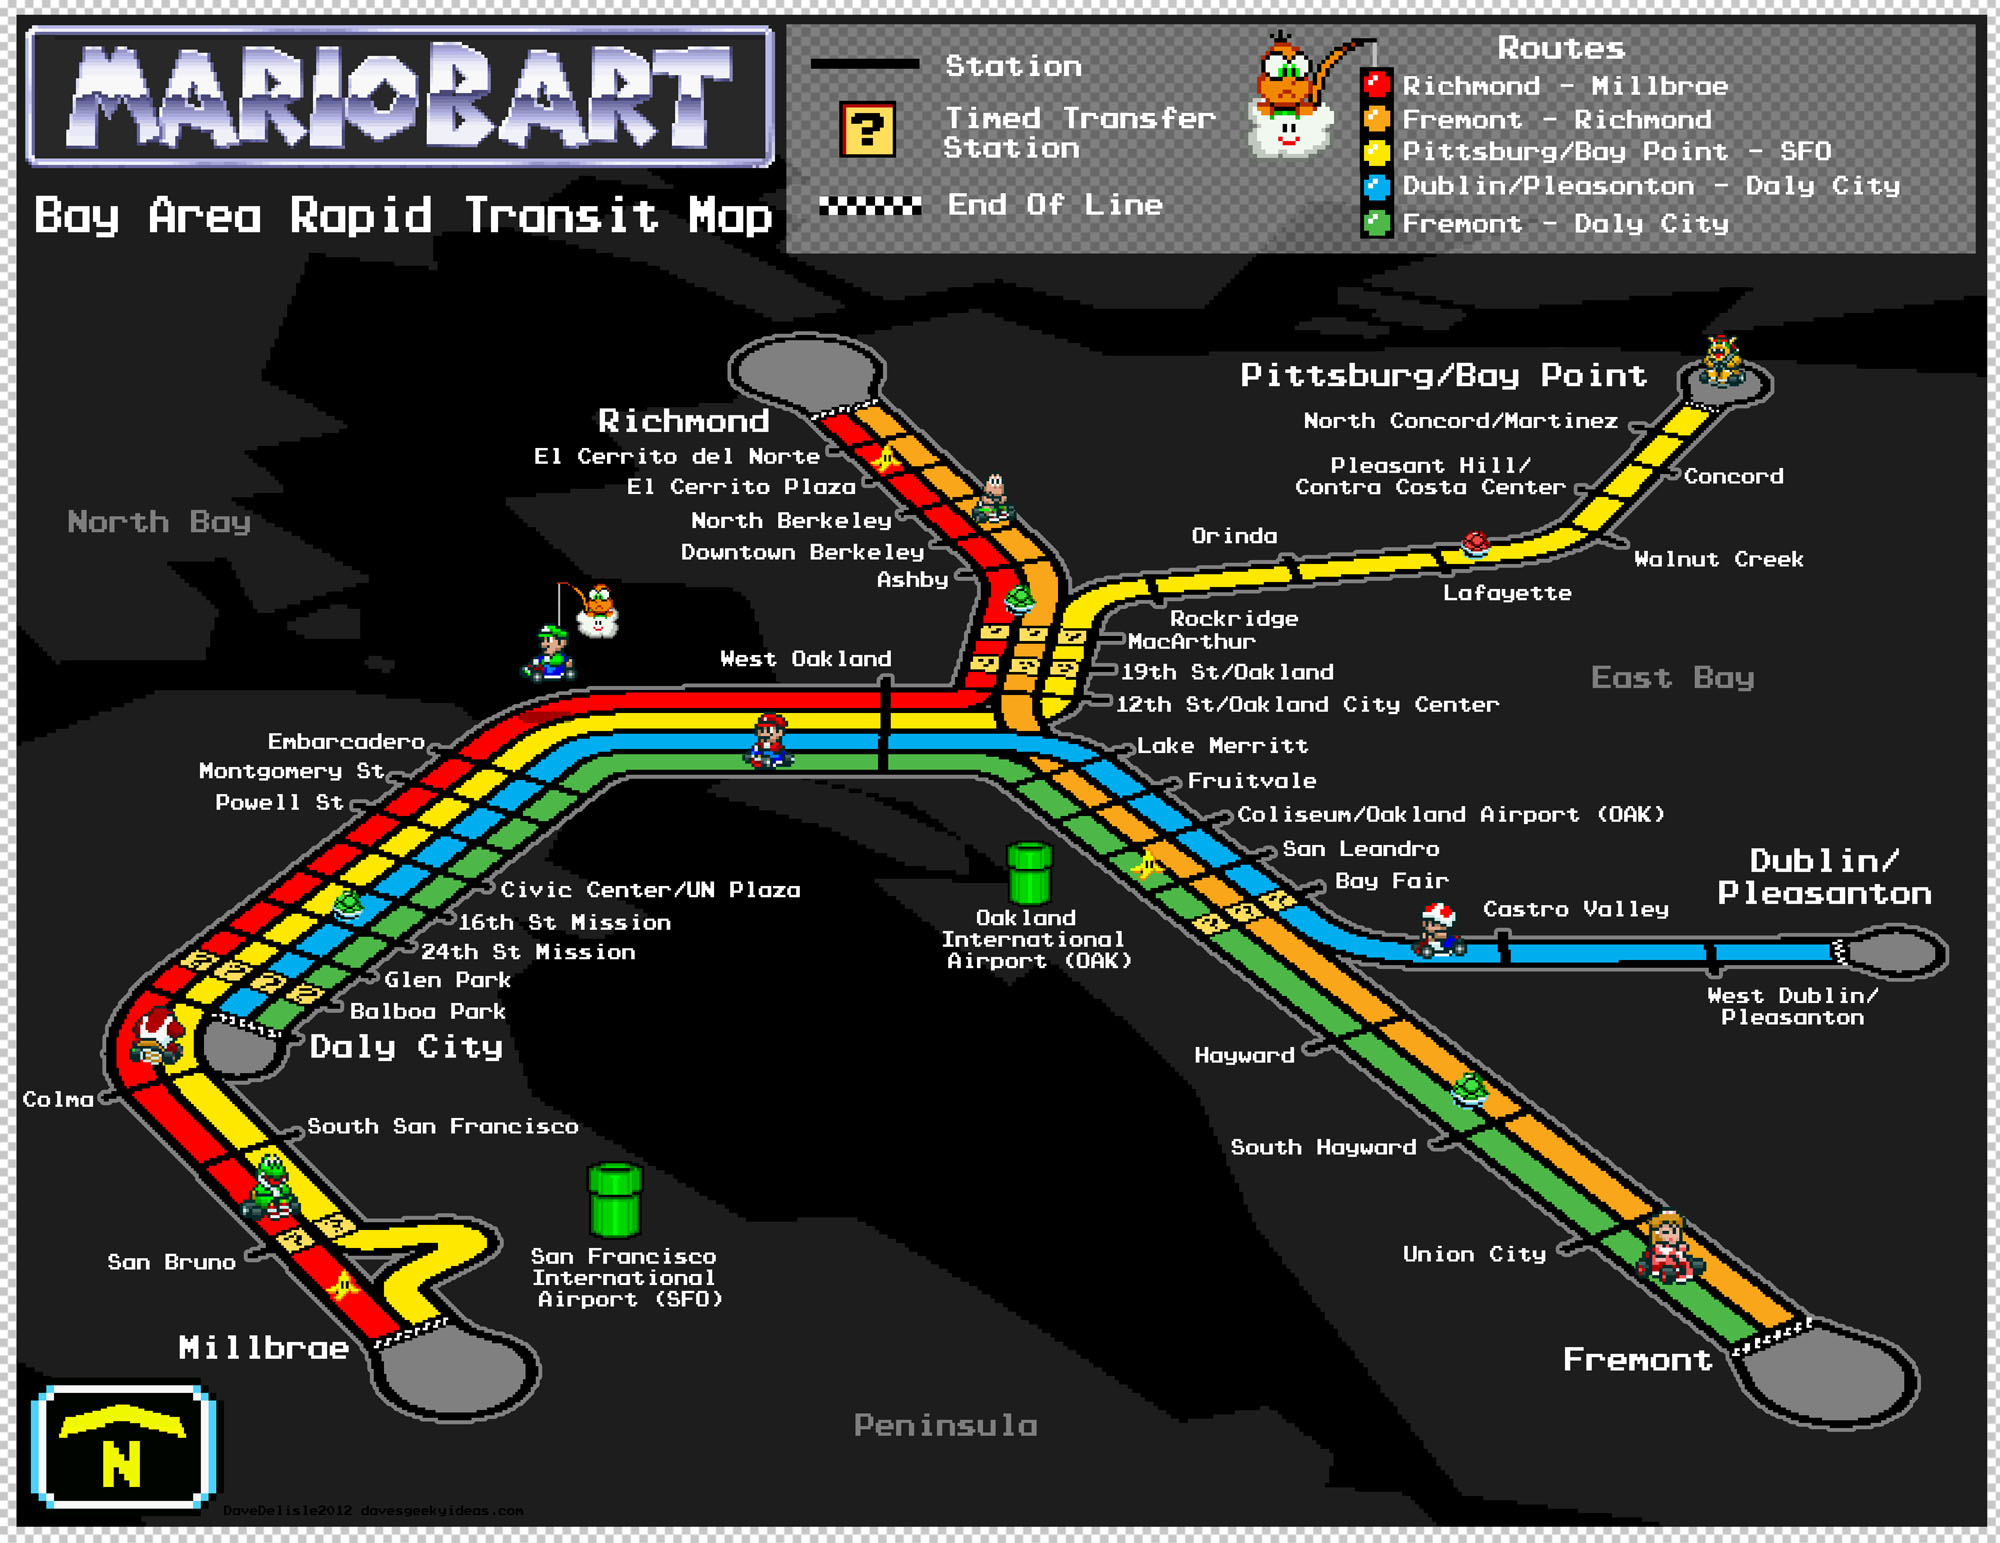 Bay Area Rapid Transit Map – Super Mario Kart Style – Dave's